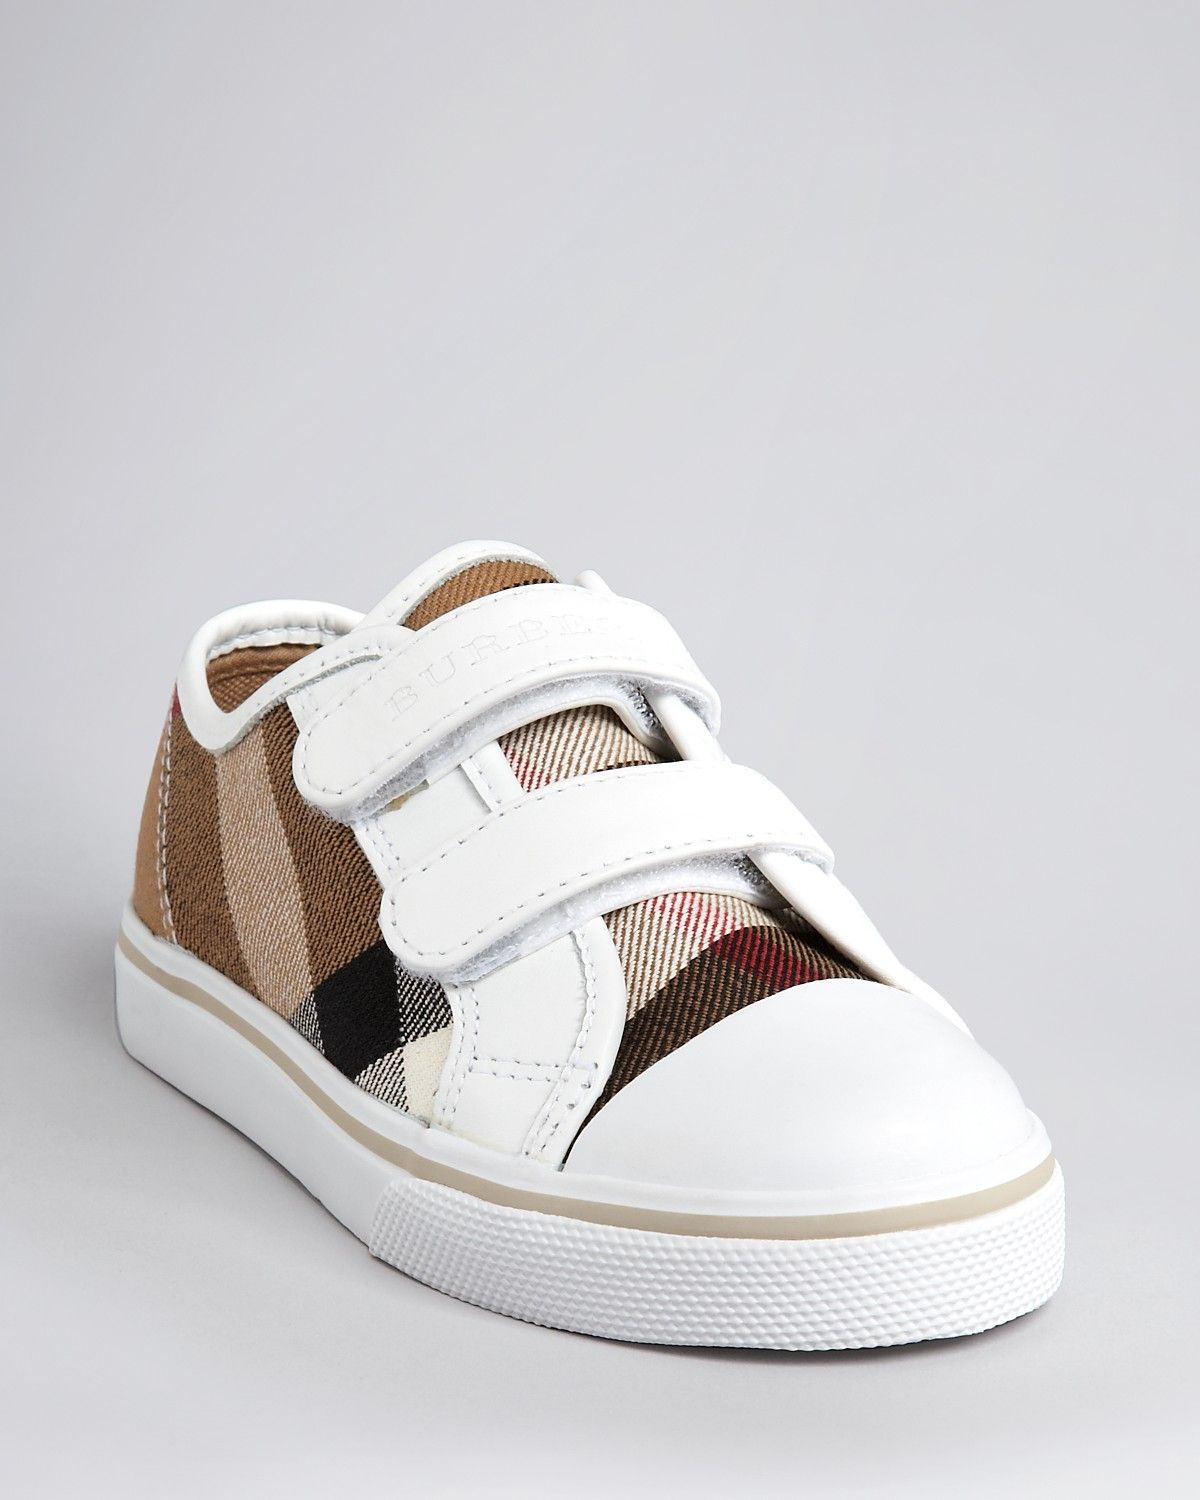 4da4375bdeb6 Burberry Baby Boys Shoes I want these for my son!!!  )